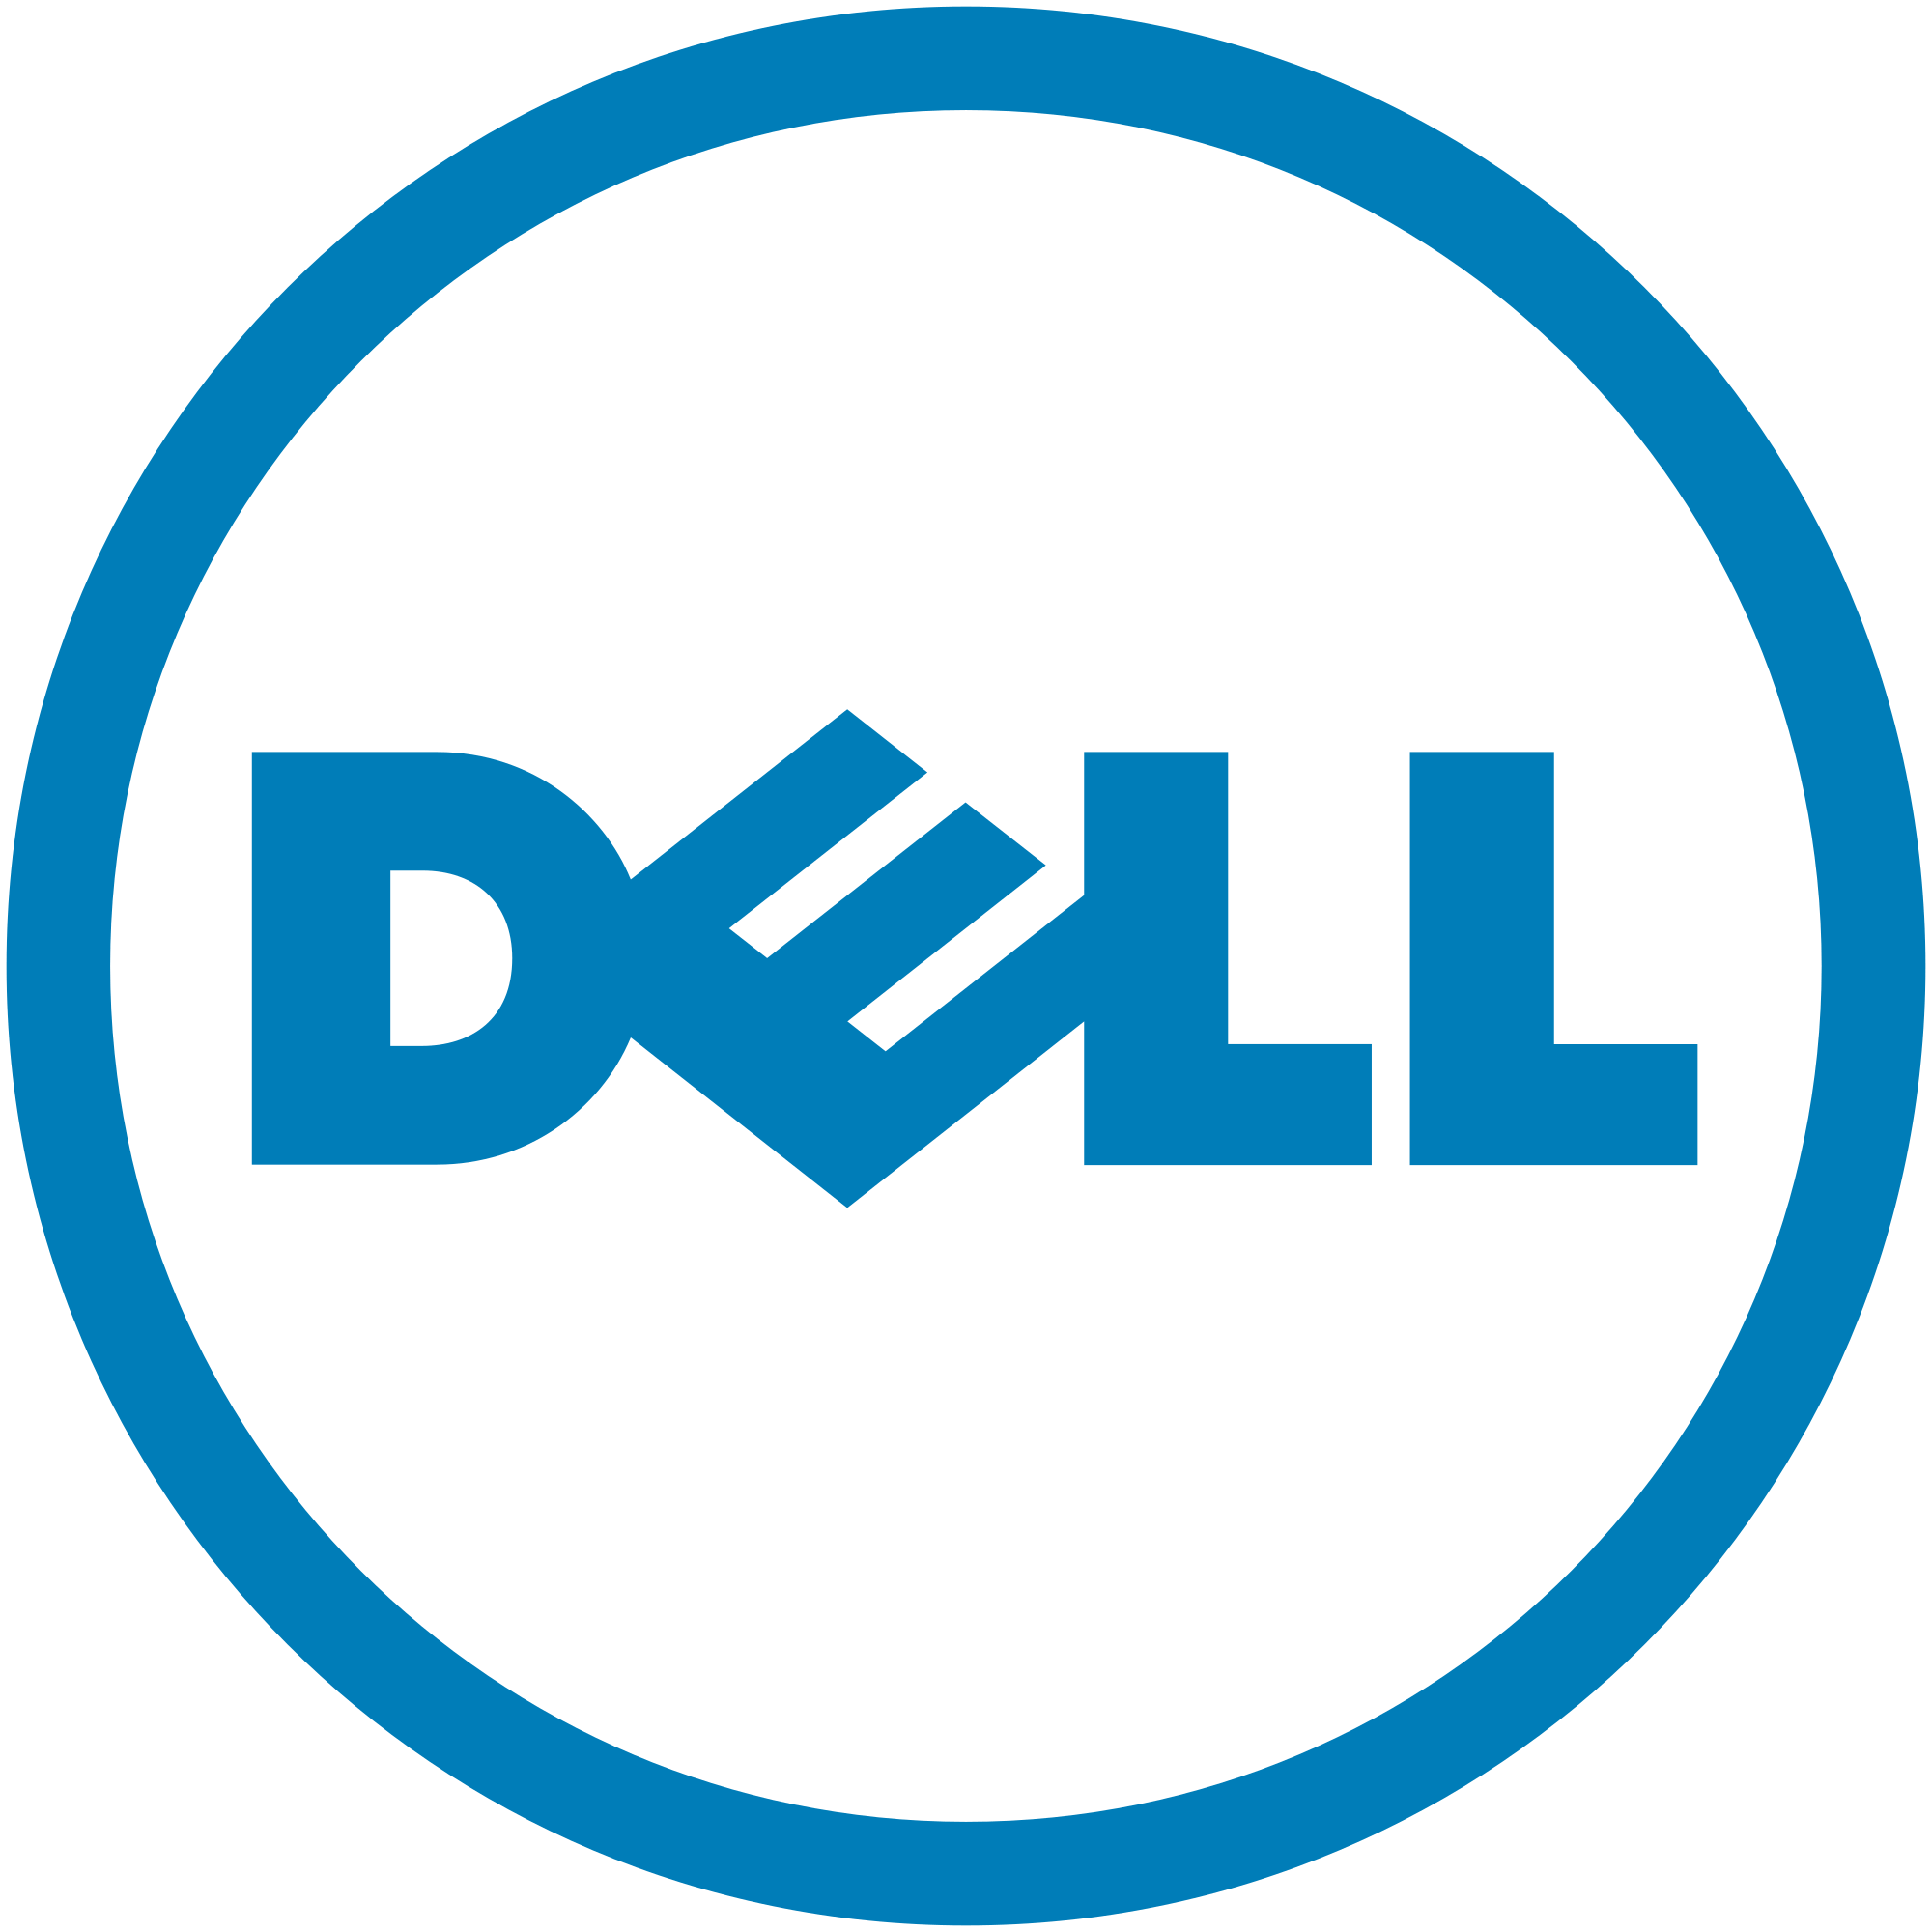 Dell and DataCore Partnership - DataCore Software